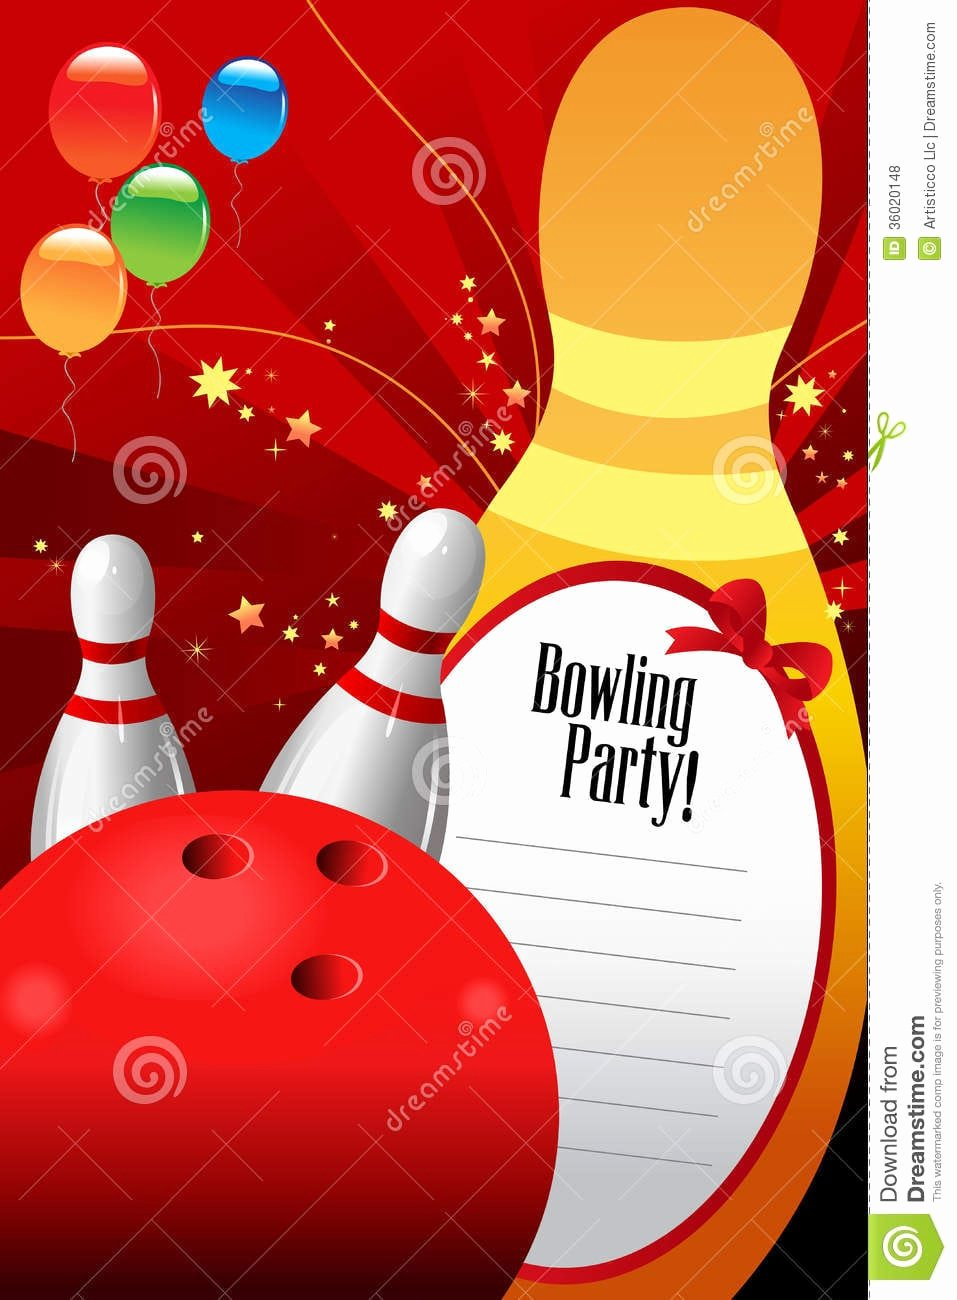 Bowling Party Invites Template Inspirational Free Bowling Invitation Template